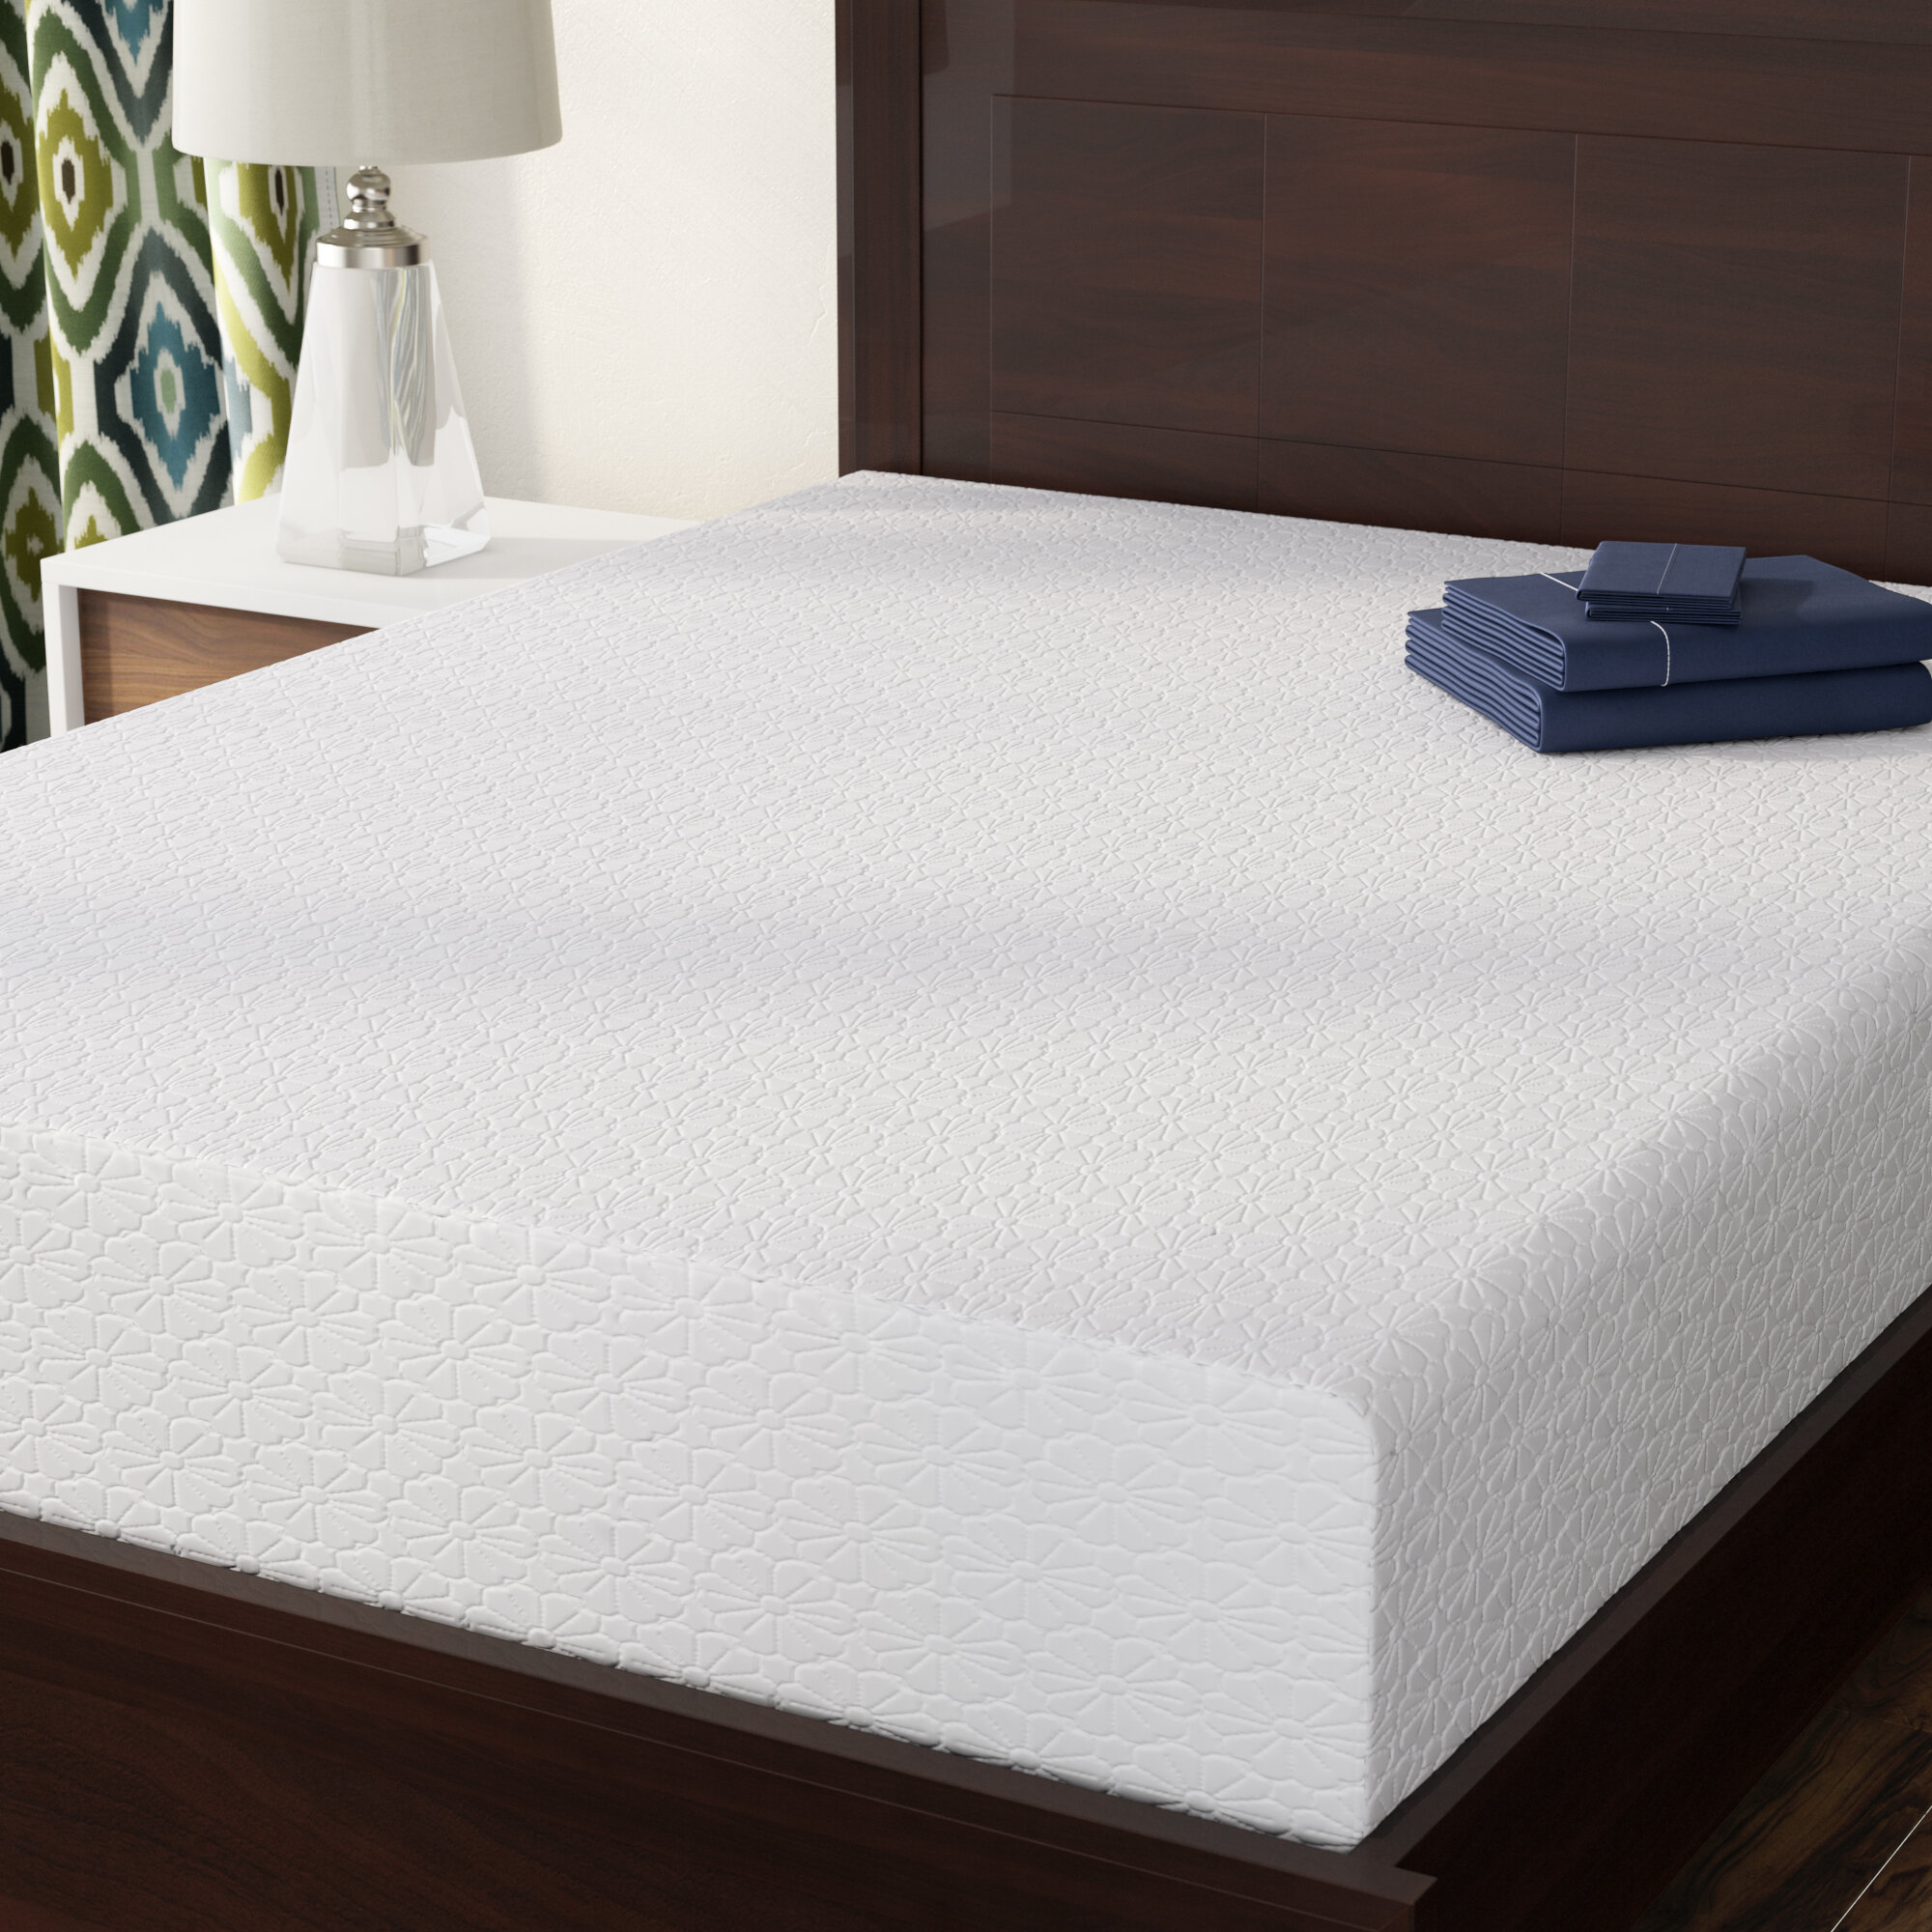 royal dream foam canada queen ryaldream memory jysk mattress